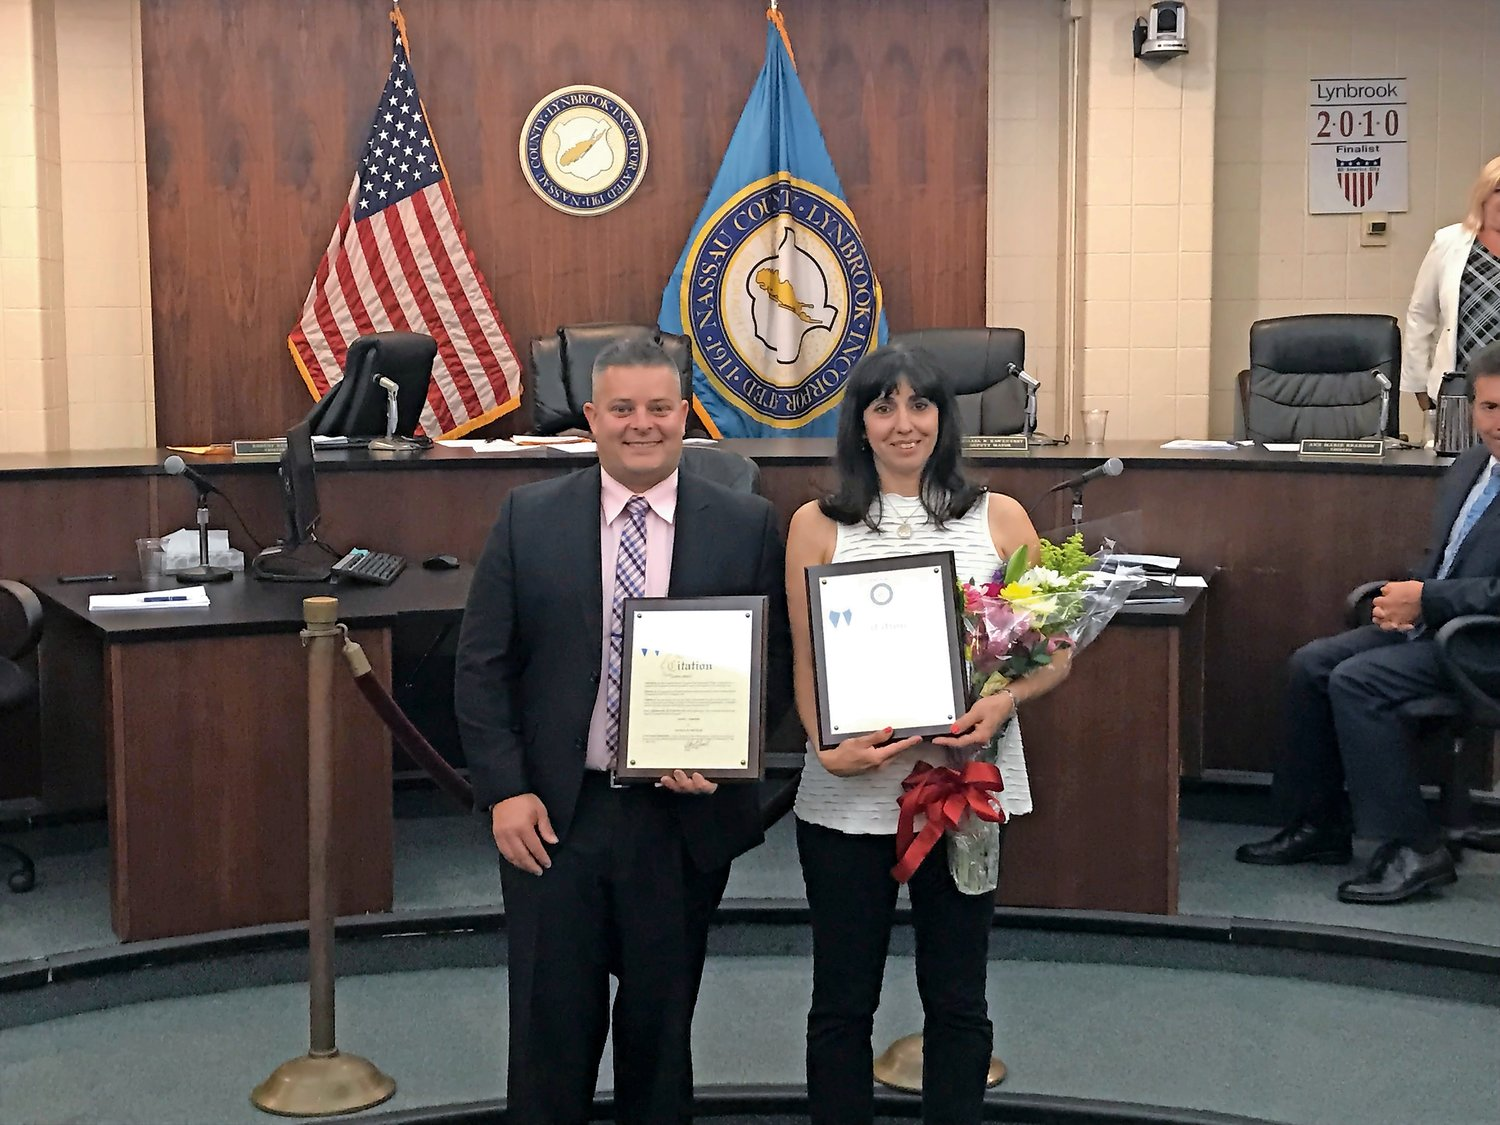 Daniel Ambrosio and Andrea Wong were named Lynbrook's Man and Woman of the Year, respectively, at the village board meeting on June 3.